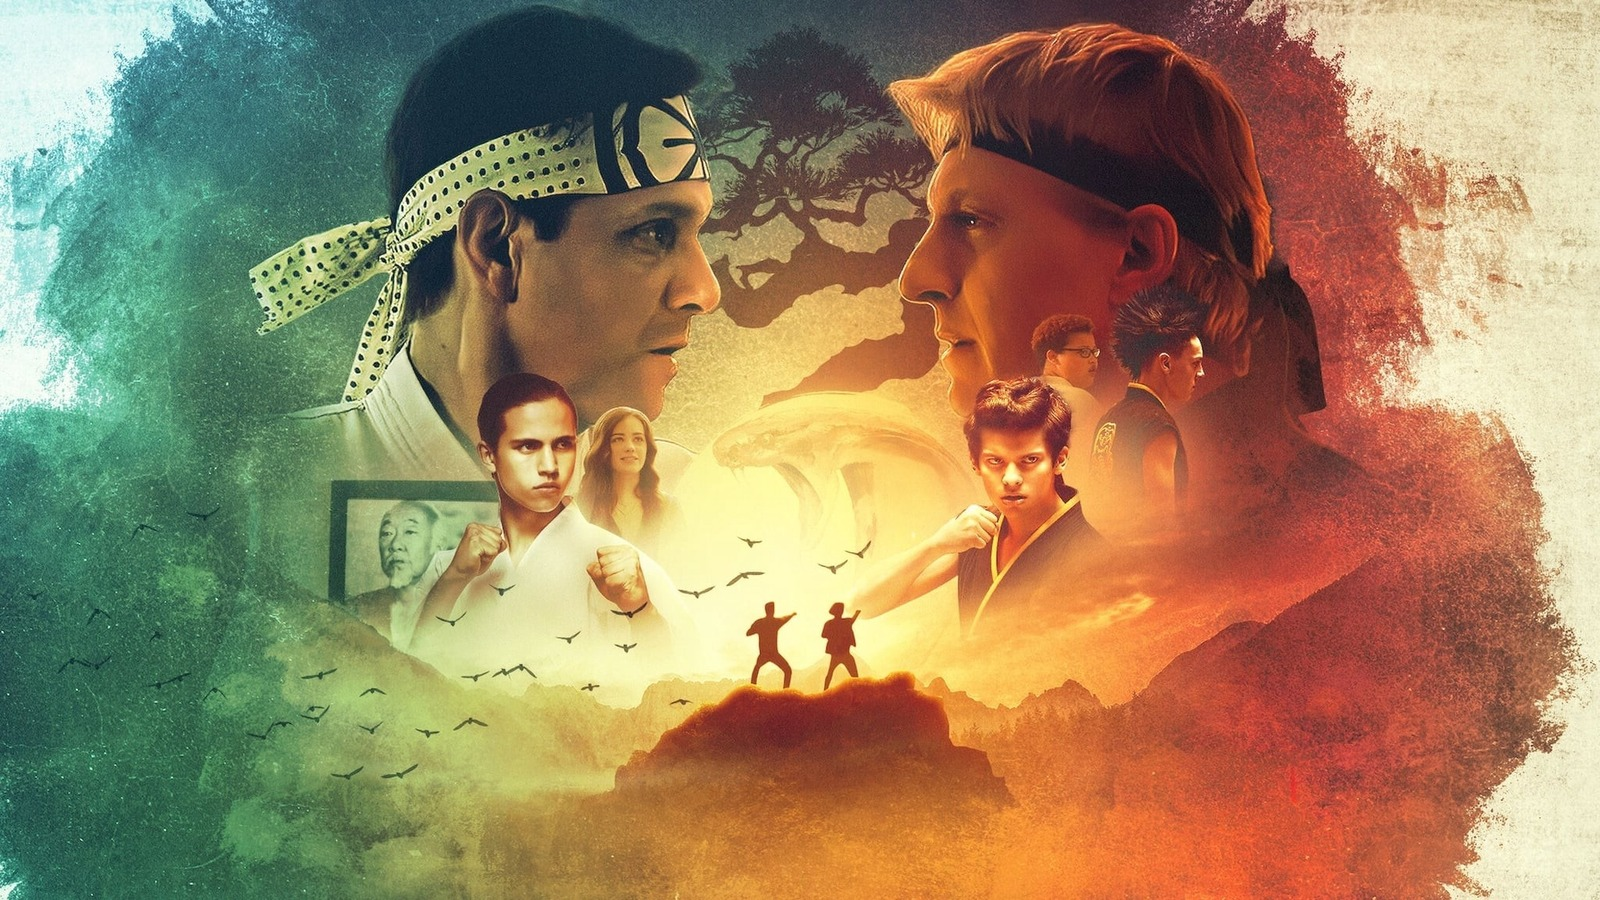 How Old The Cast Of Cobra Kai Really Is The series was created by josh heald, jon hurwitz and hayden schlossberg, and stars ralph macchio and william zabka. how old the cast of cobra kai really is